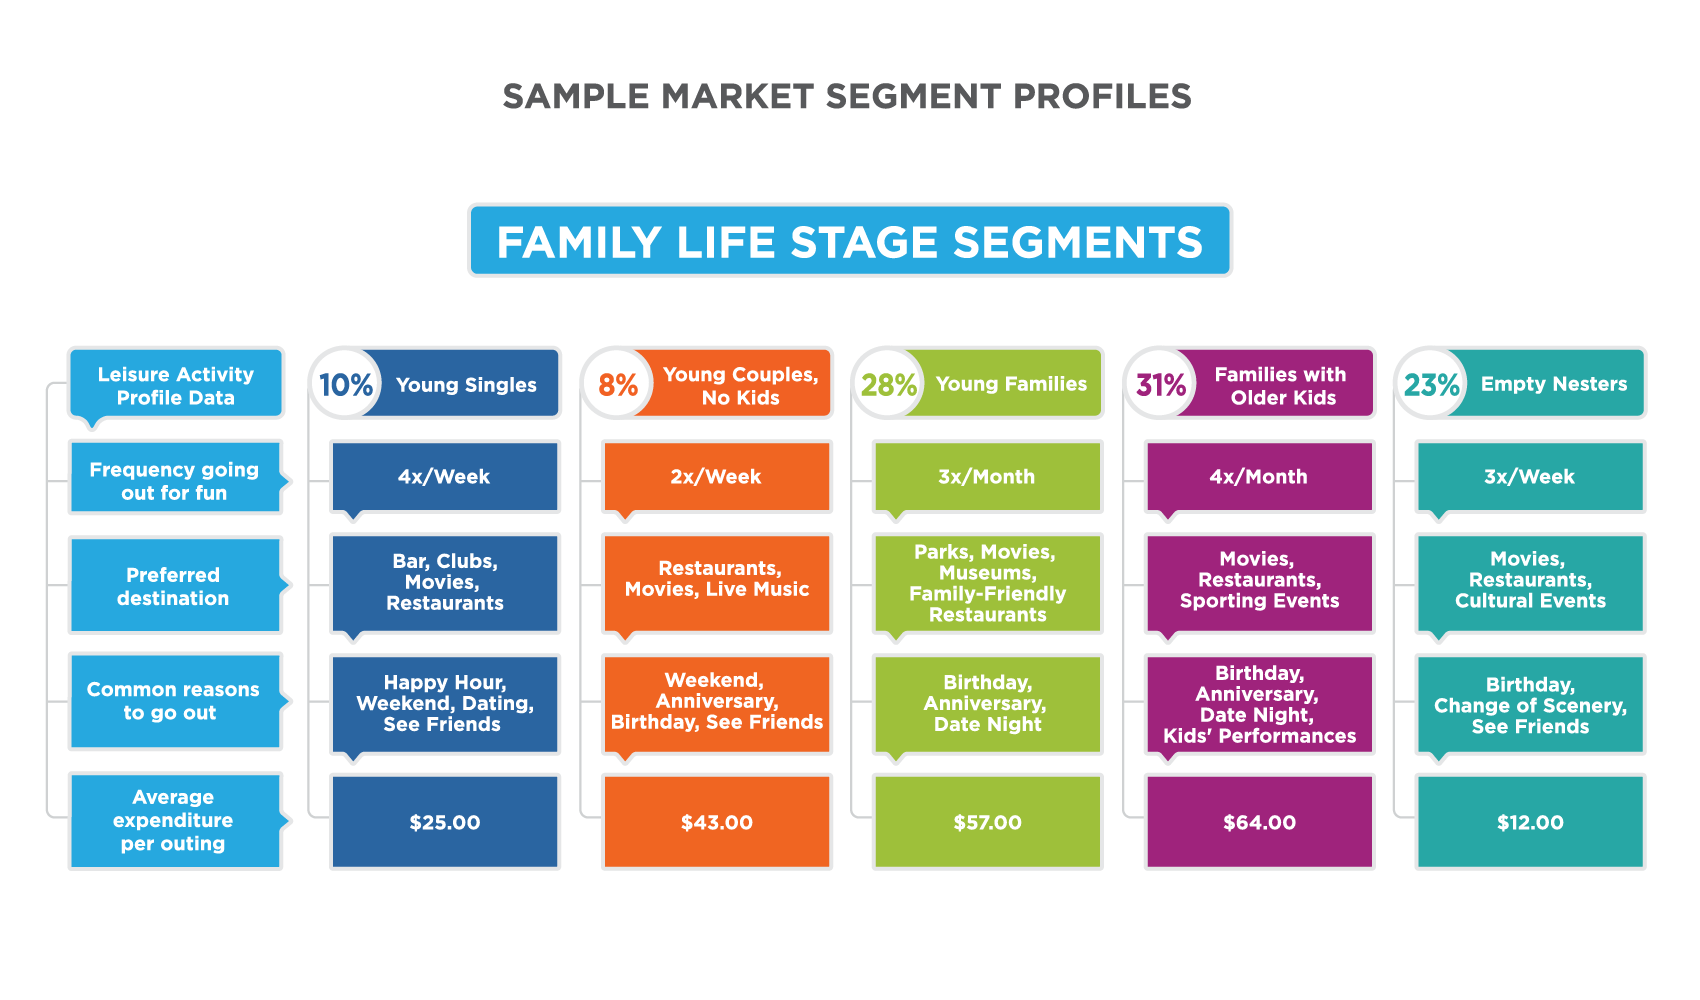 Chart titled Sample Market Segment Profiles: Family Life Stages Segments. Left-most Column is Young Singles (10%). Frequency of going out for fun: 4 outings per week. Preferred destination: bar, clubs, movies, restaurants. Common reasons to go out: Happy Hour, weekend, dating, see friends. Average expenditure per outing: $25. Second column is Young Couples, No Kids (8%). Frequency of going out for fun: 2 outings per week. Preferred destination: Restaurants, movies, live music. Common reasons to go out: weekend, anniversary, birthday, see friends. Average expenditure per outing: $43. Third column is Young Families (28%). Frequency of going out for fun: 3 outings per month. Preferred destination: parks, movies, museums, family-friendly restaurants. Common reasons to go out: birthday, anniversary, date night. Average expenditure per outing: $57. Fourth column is Families with older kids (31%). Frequency of going out for fun: 4 outings per month. Preferred destination: movies, restaurants, sporting events. Common reasons to go out: birthday, anniversary, date night, kids' performances. Average expenditure per outing: $64. Fifth column is Empty nesters (23%). Frequency of going out for fun: 3 outings per week. Preferred destination: movies, restaurants, cultural events. Common reasons to go out: birthday, change of scenery, see friends. Average expenditure per outing: $12.